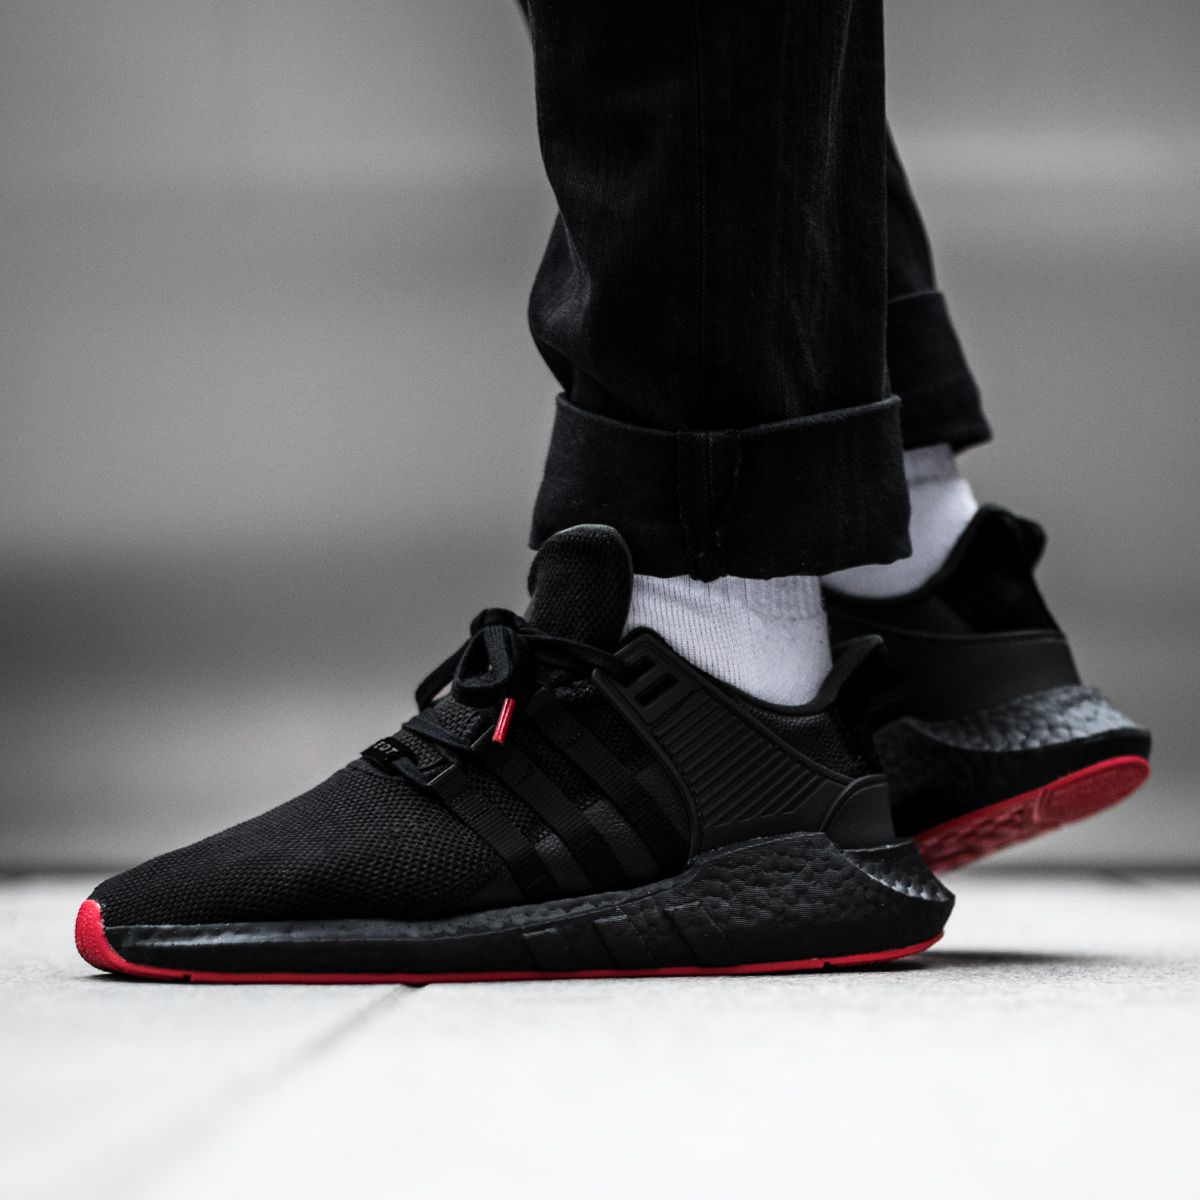 811f503db9f0 The adidas EQT Support 93 17  Red Carpet Pack  featuring two colorways are  available on KICKZPREMIUM.com!